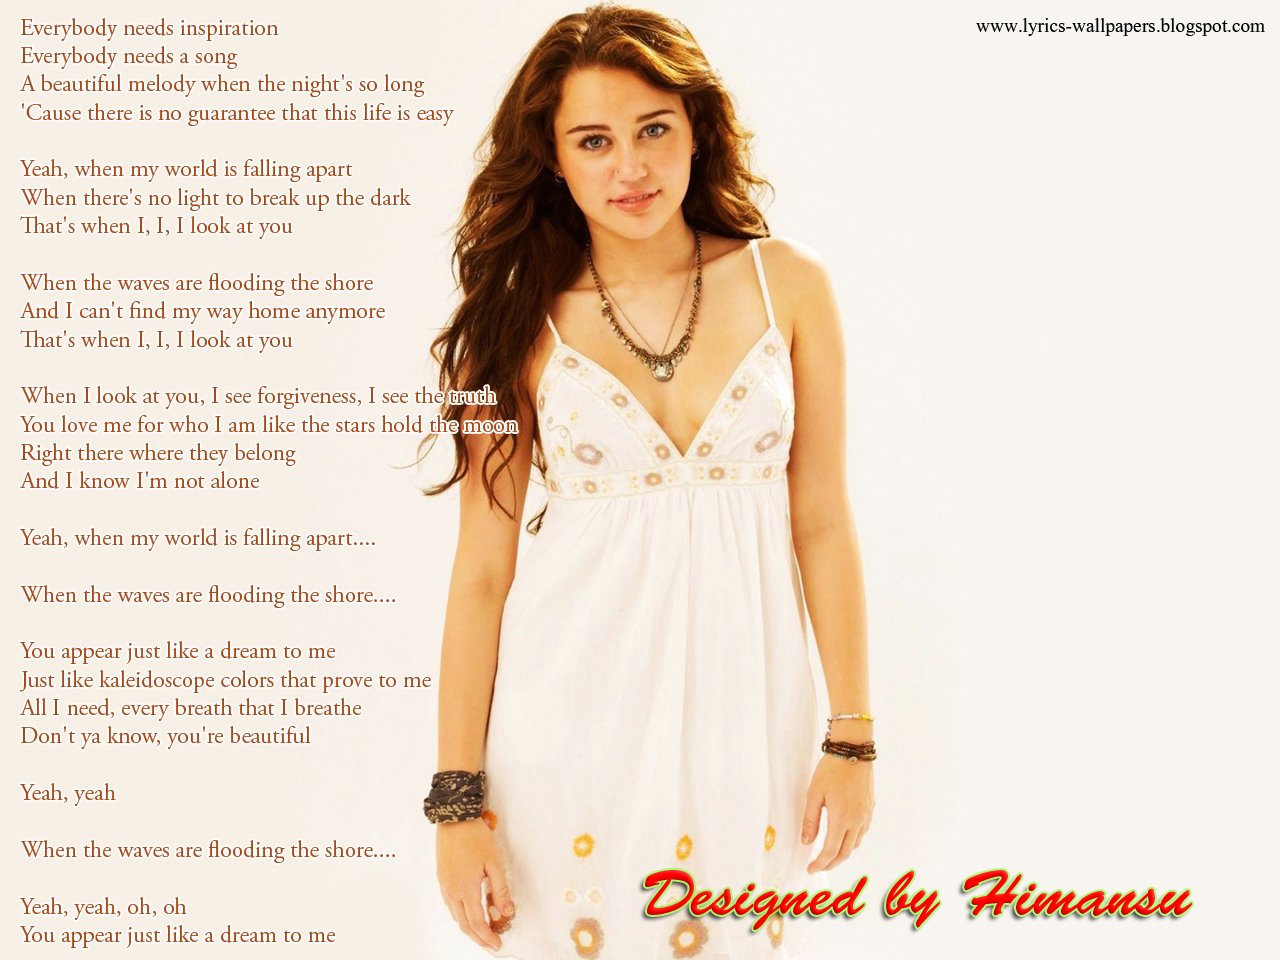 Lyrics Wallpapers - Miley Cyrus - When I Look At You